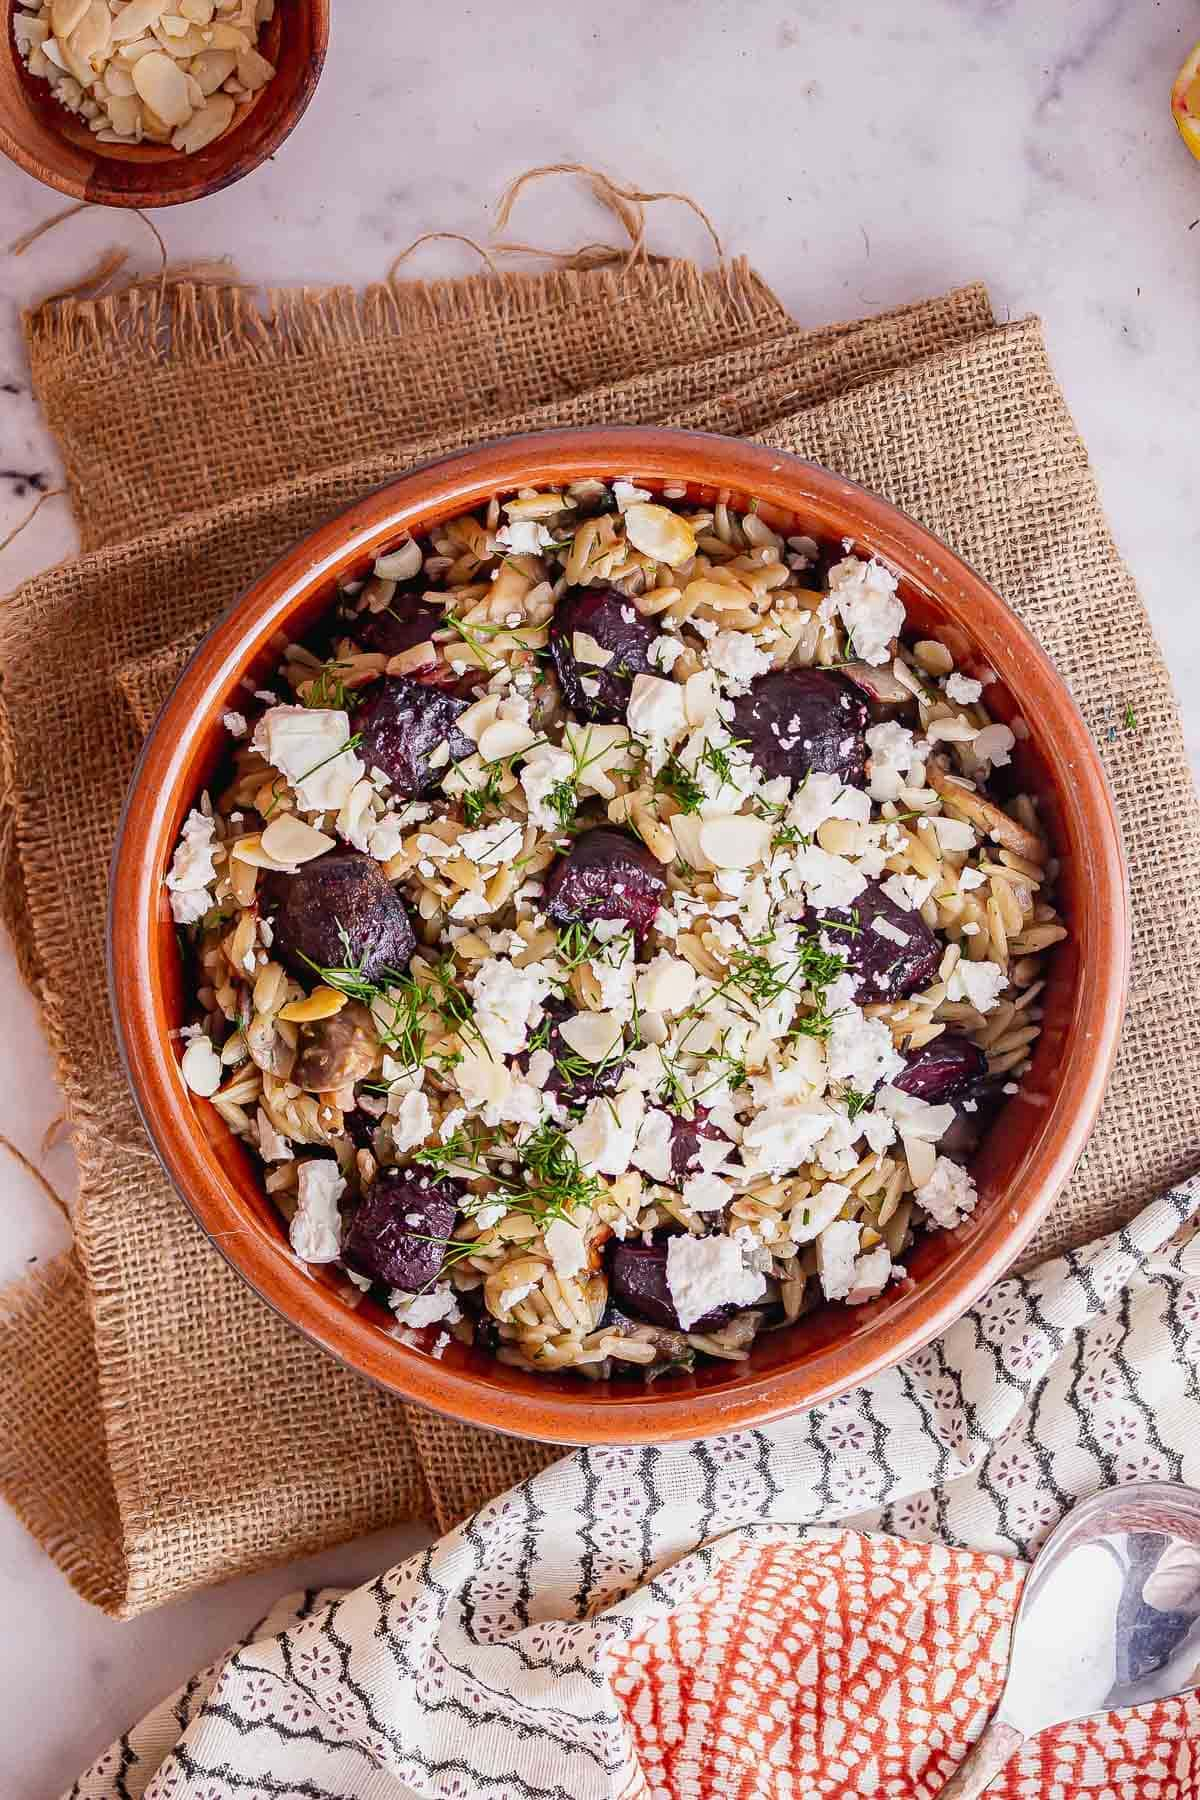 Overhead shot of terracotta bowl of orzo with beetroot and feta